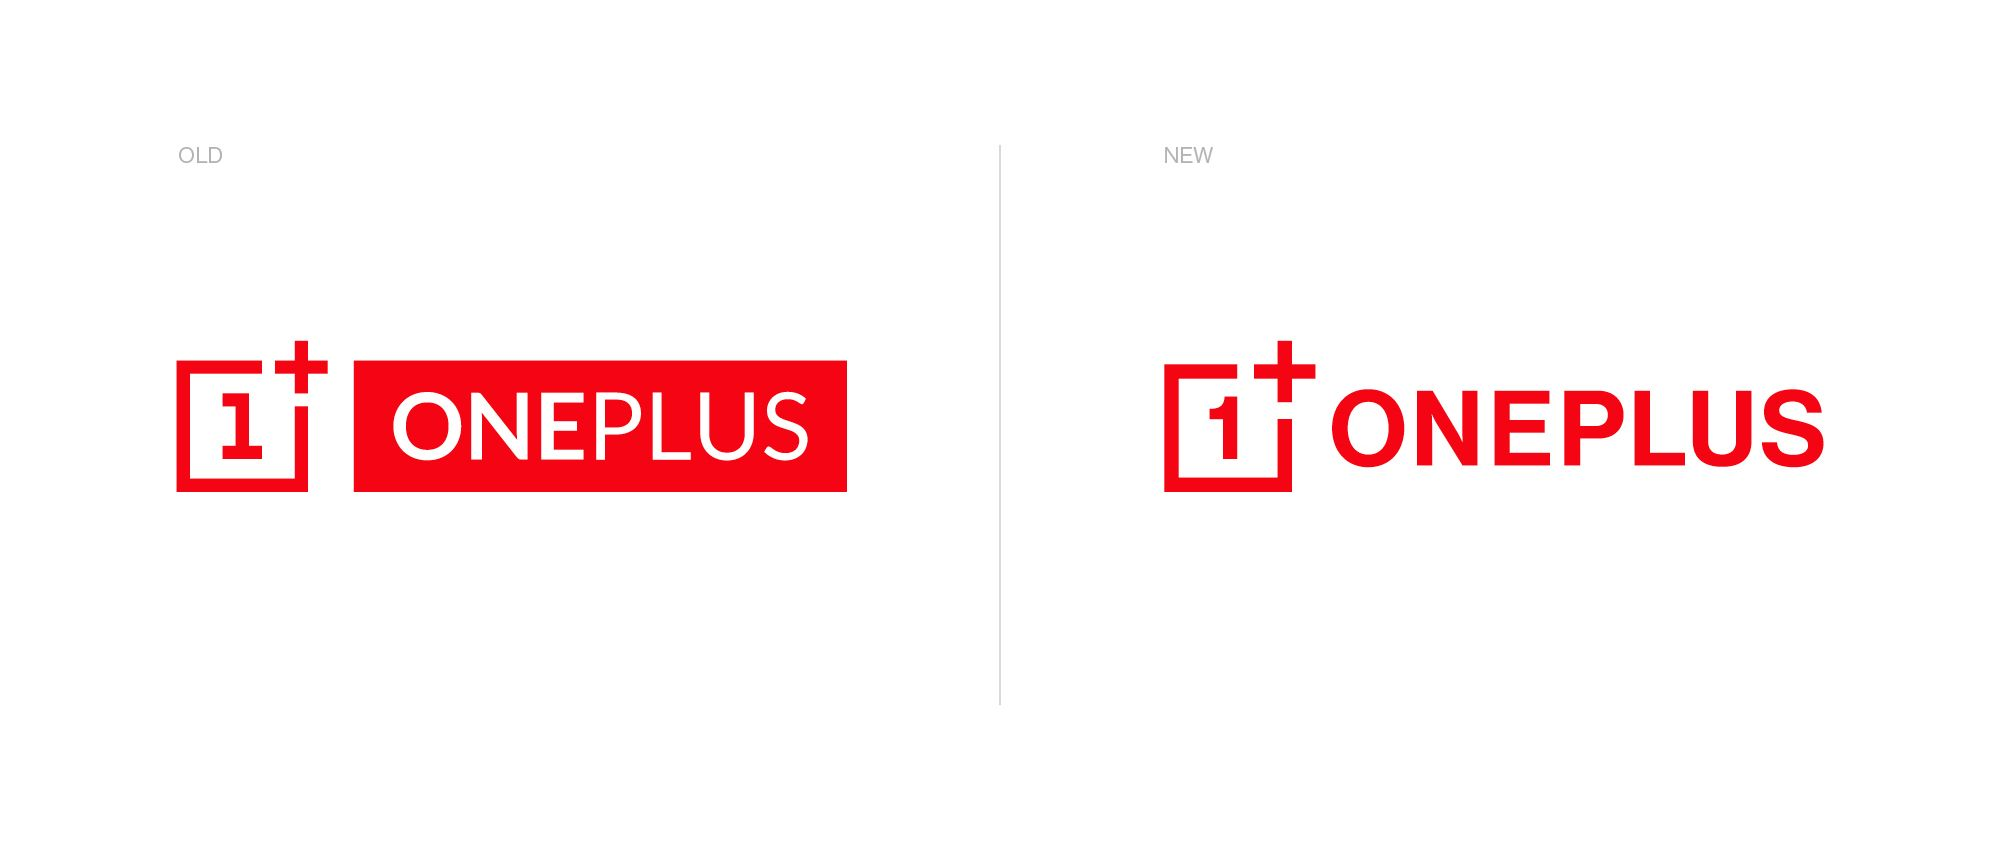 The Old and New OnePlus logo and icon. Image: OnePlus